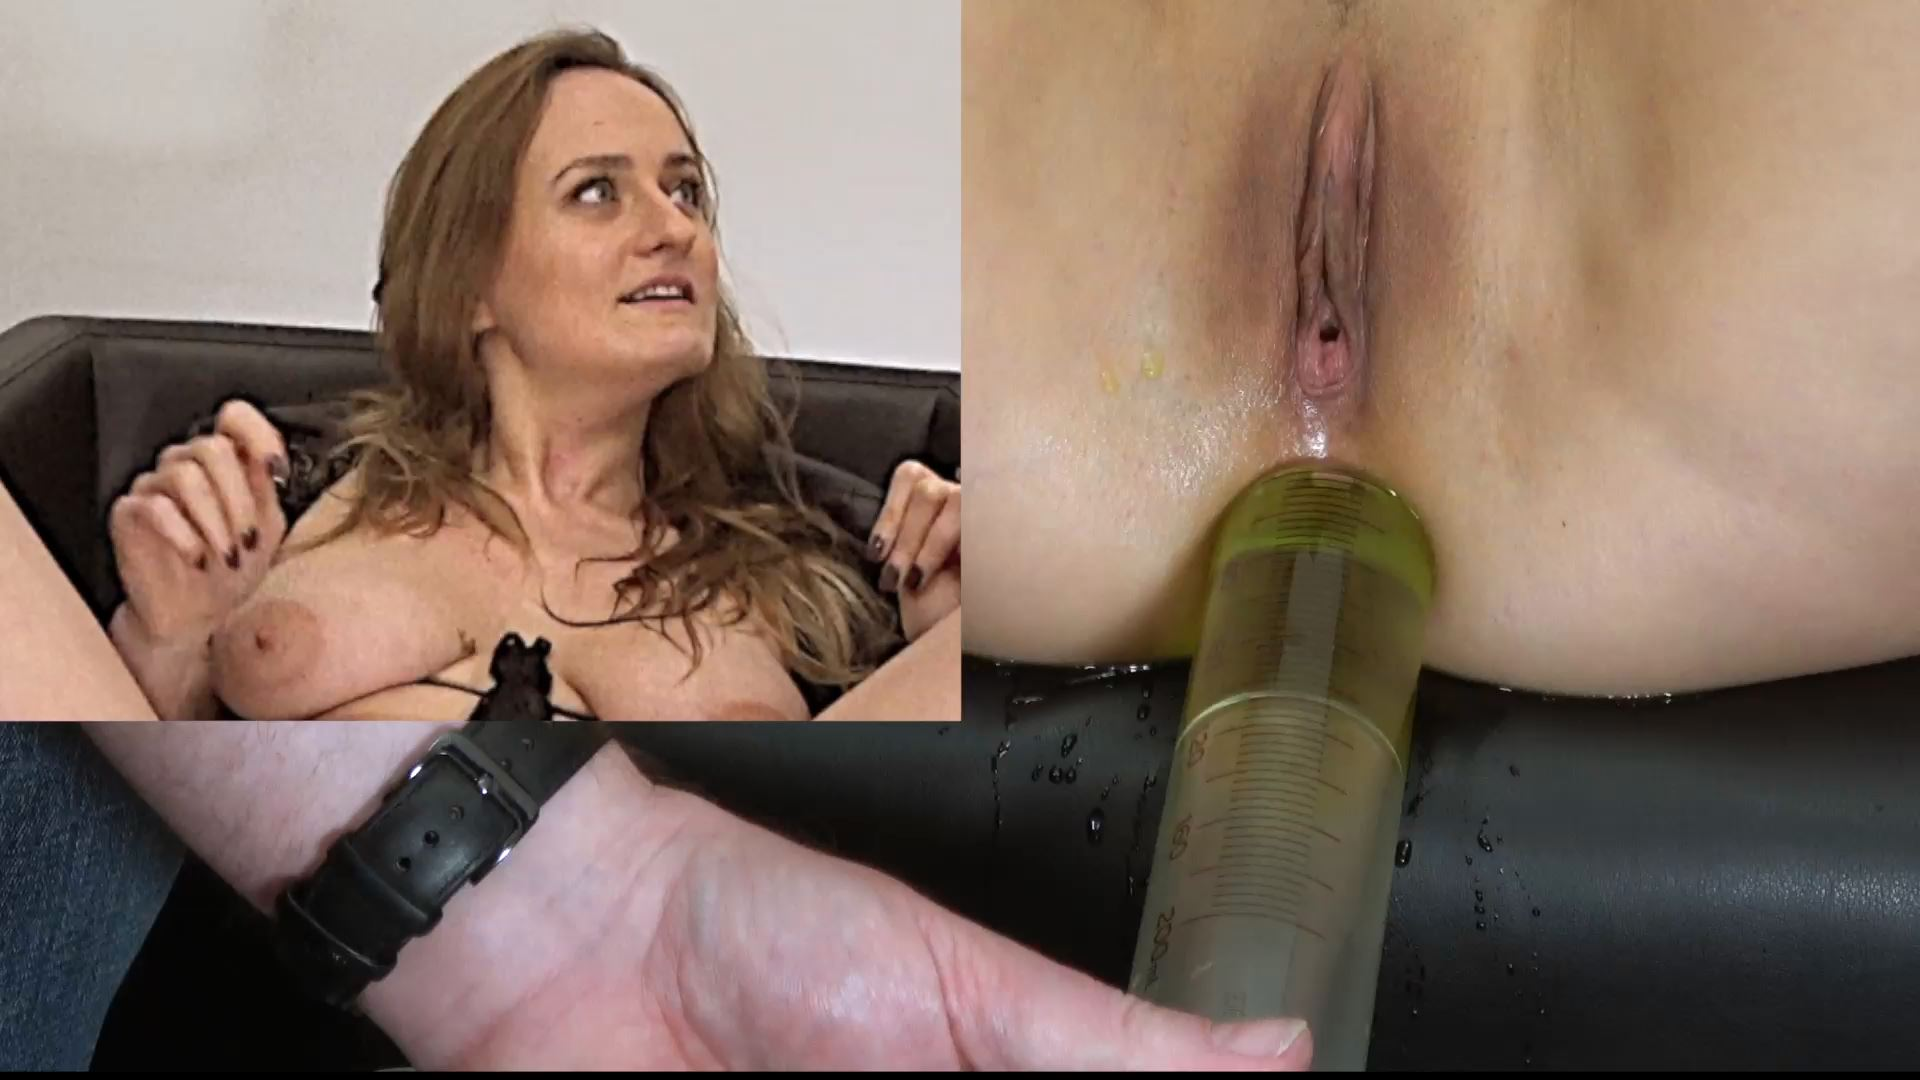 [WATER AND POWER] Giggling Orgasm Inflation 1 - Ela Winters [FULL HD][1080p][MP4]